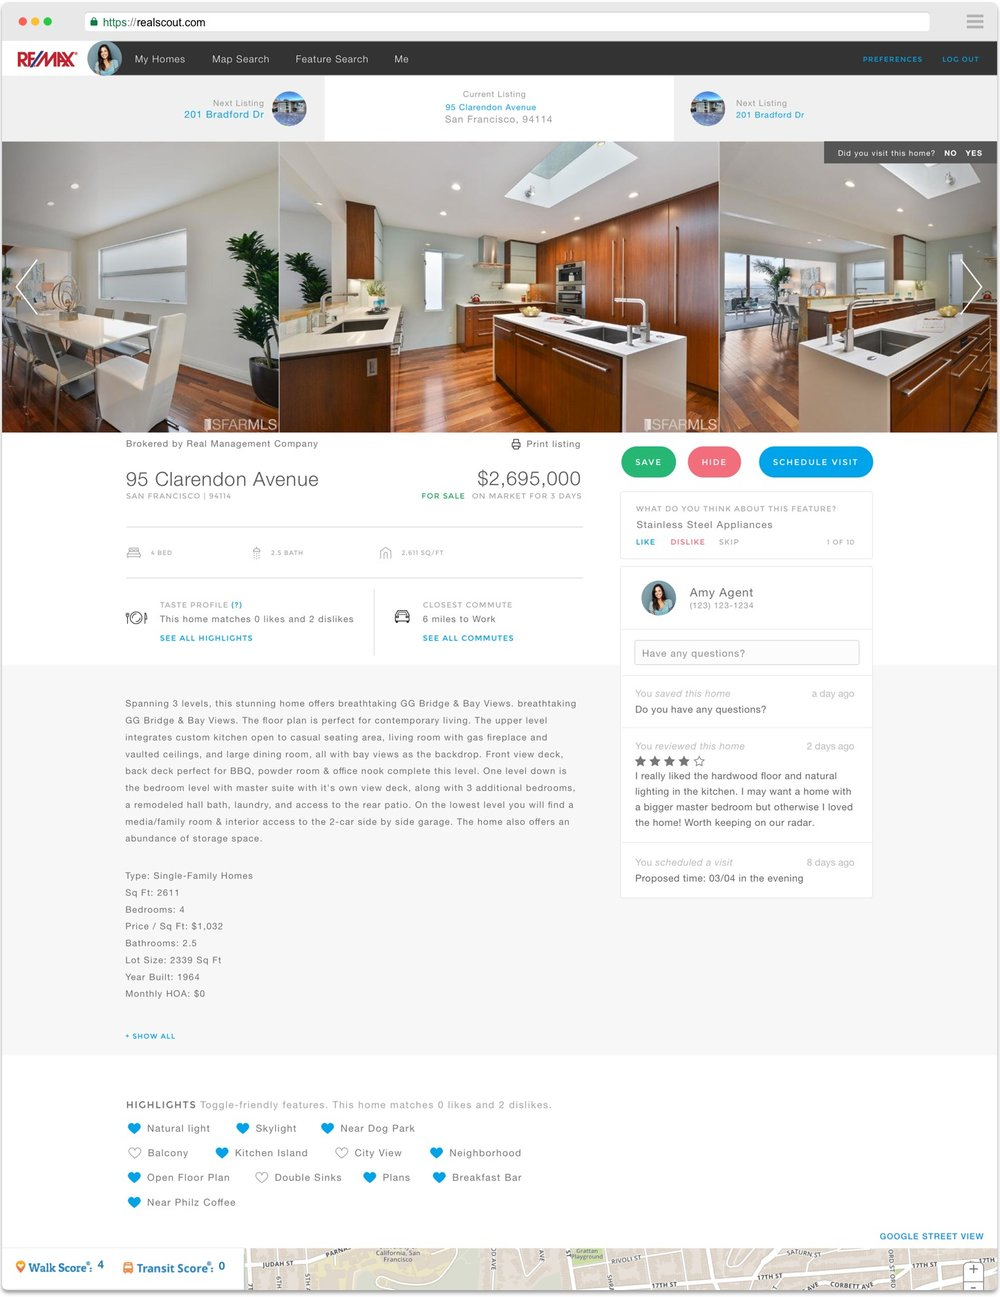 IT'S IN THE DETAILS - RealScout shows you compatible homes and offers intuitive browsing and details that most sites don't. Search by rooms, plan your commute, and ask your agent questions.